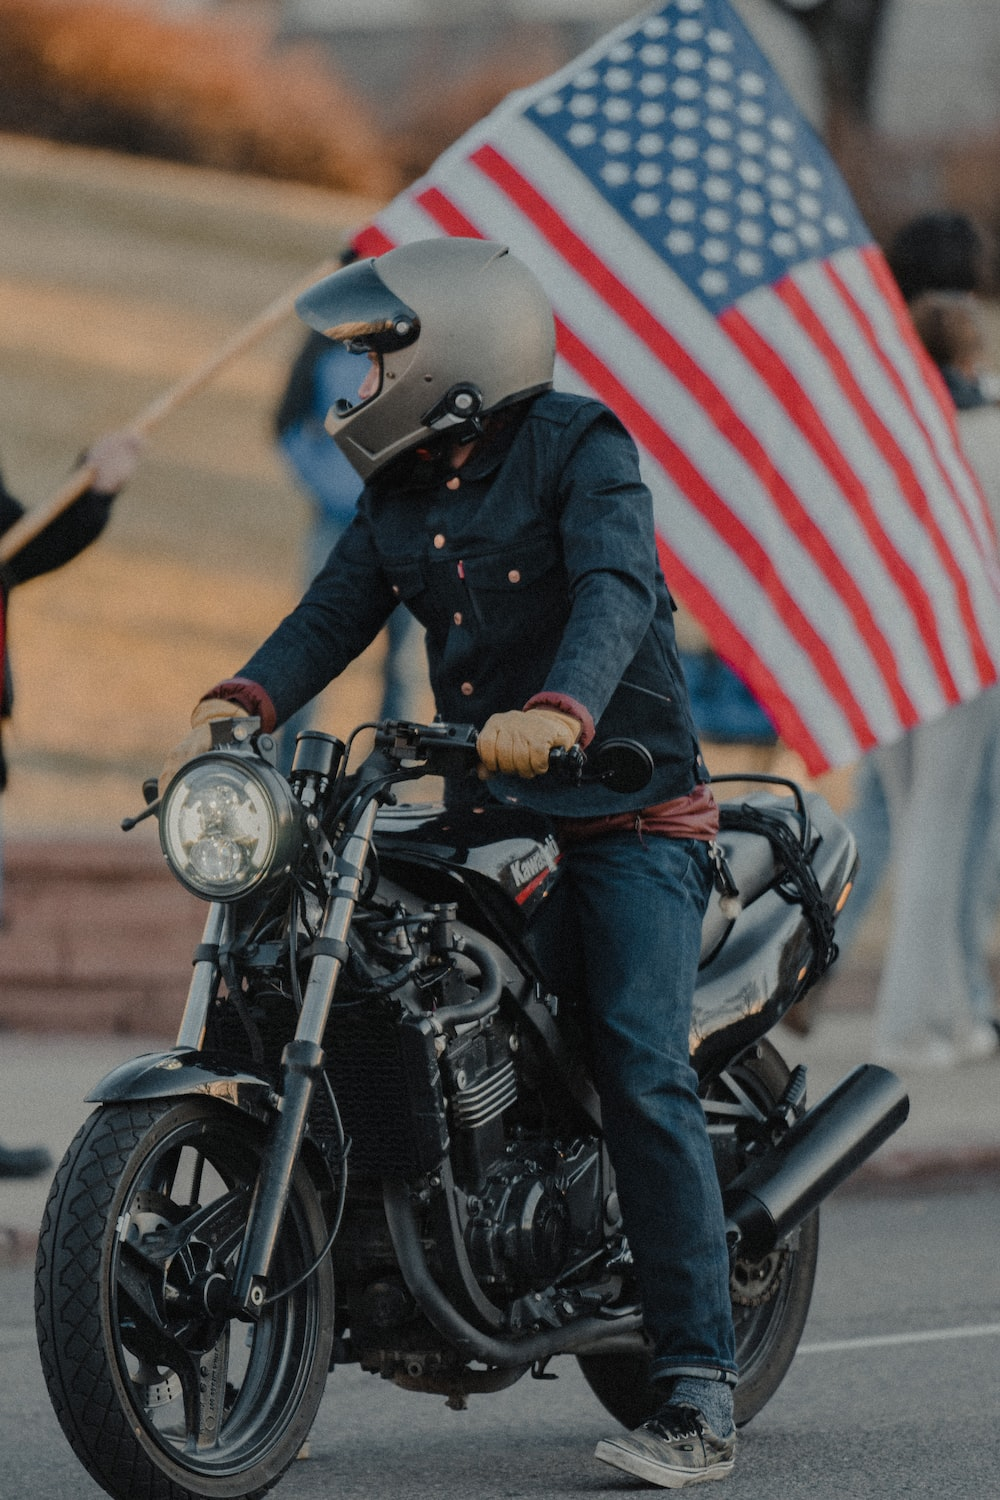 man in black jacket riding black motorcycle with us flag on his back